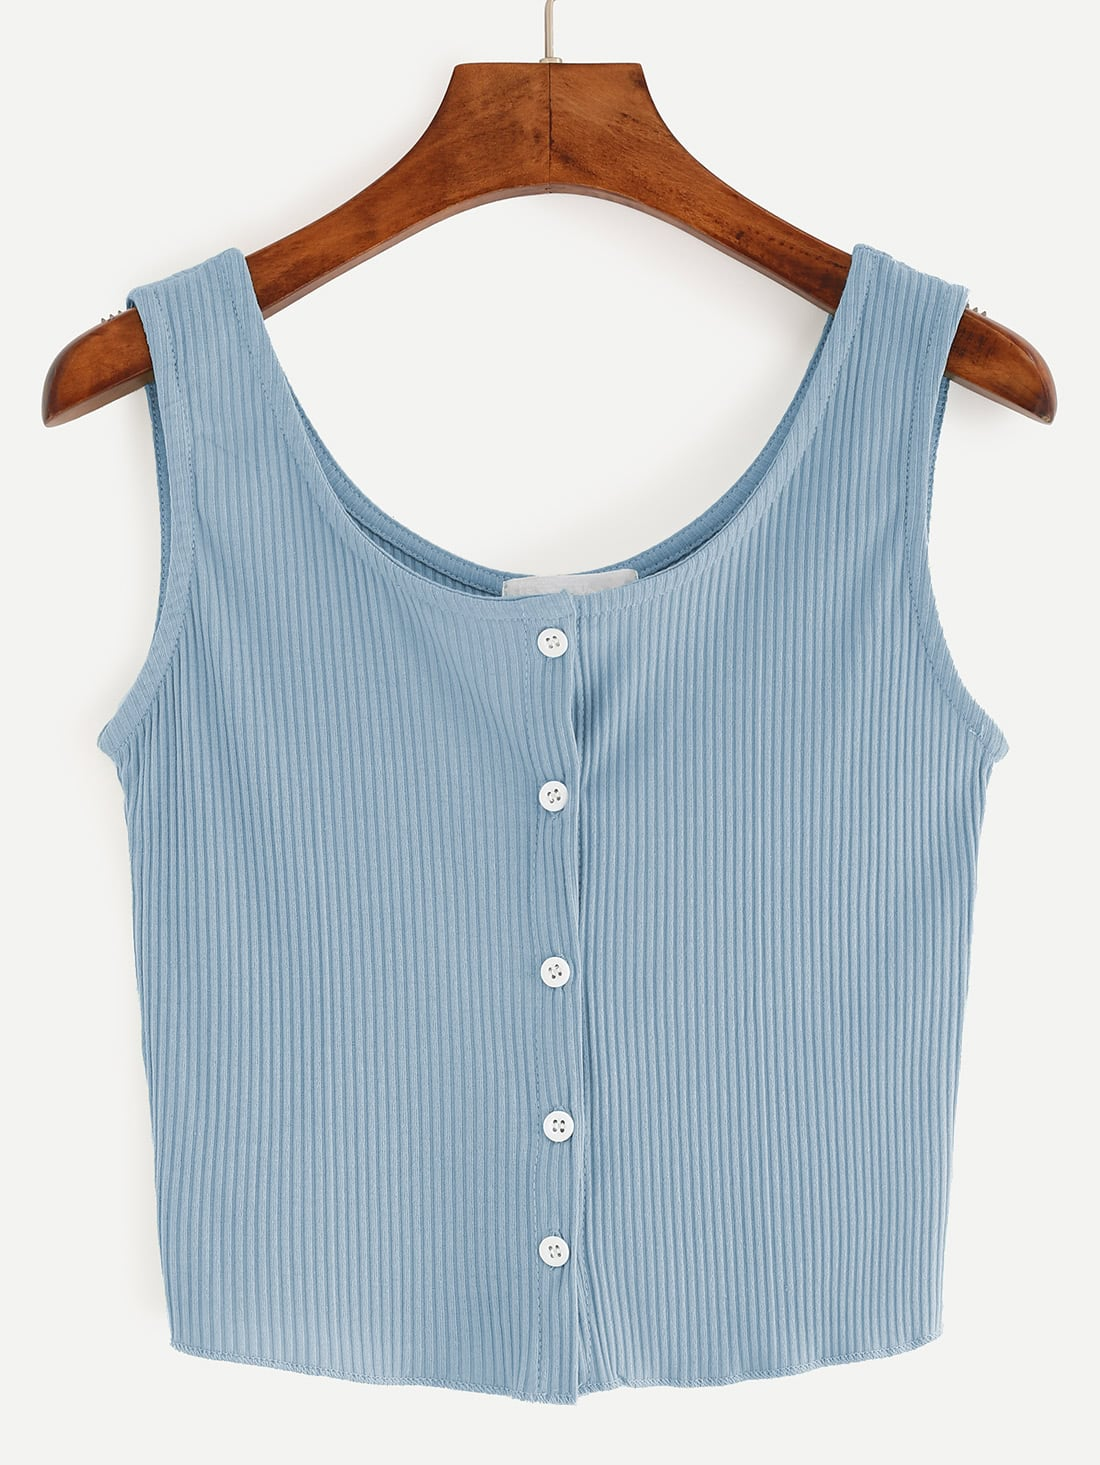 Button Front Ribbed Tank Top vest160705028